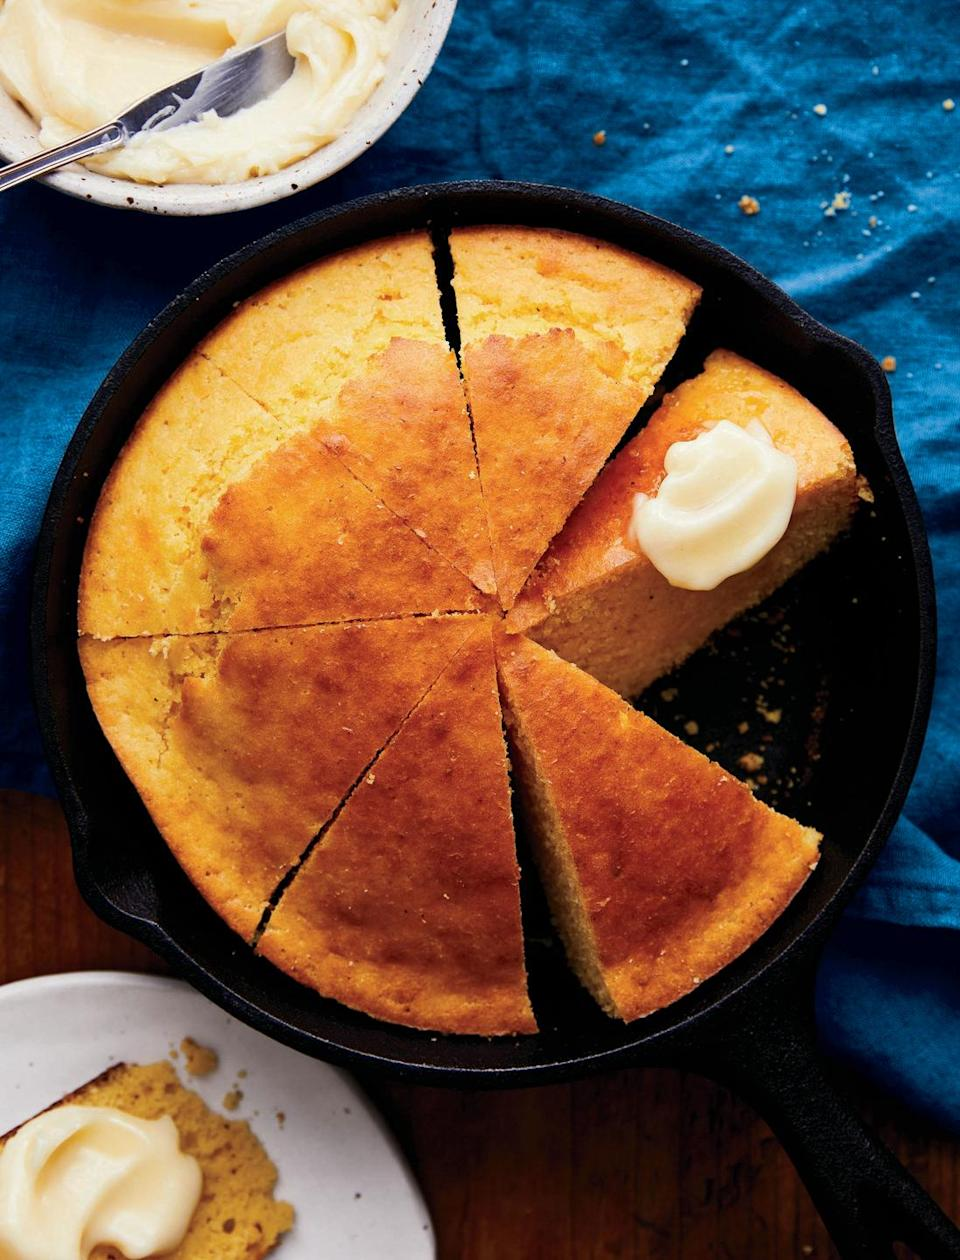 """<p>This cornbread is very good. But if we're being honest, it's just a vehicle for the amazing flavor of honey butter. </p><p><strong><a href=""""https://www.countryliving.com/food-drinks/a34276804/skillet-cornbread-with-honey-butter/"""" rel=""""nofollow noopener"""" target=""""_blank"""" data-ylk=""""slk:Get the recipe"""" class=""""link rapid-noclick-resp"""">Get the recipe</a>.</strong></p>"""